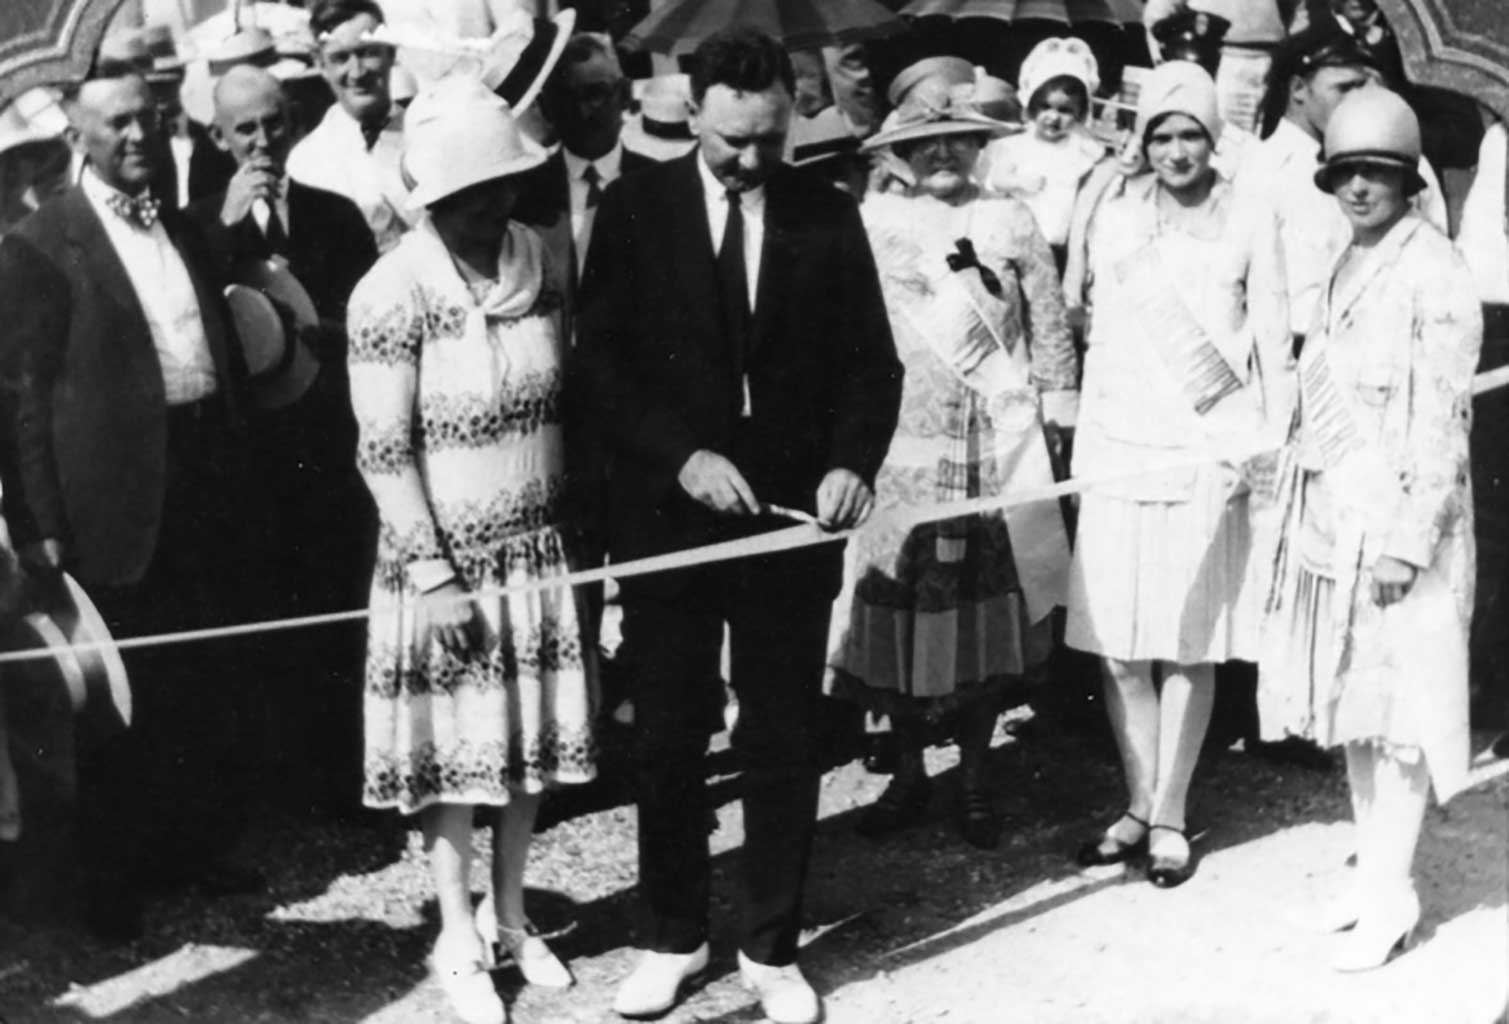 james-river-bridge-ribbon-cutting-miss-chuckatuck-dorothy-moore-2nd-from-right-with-harry-byrd-img101